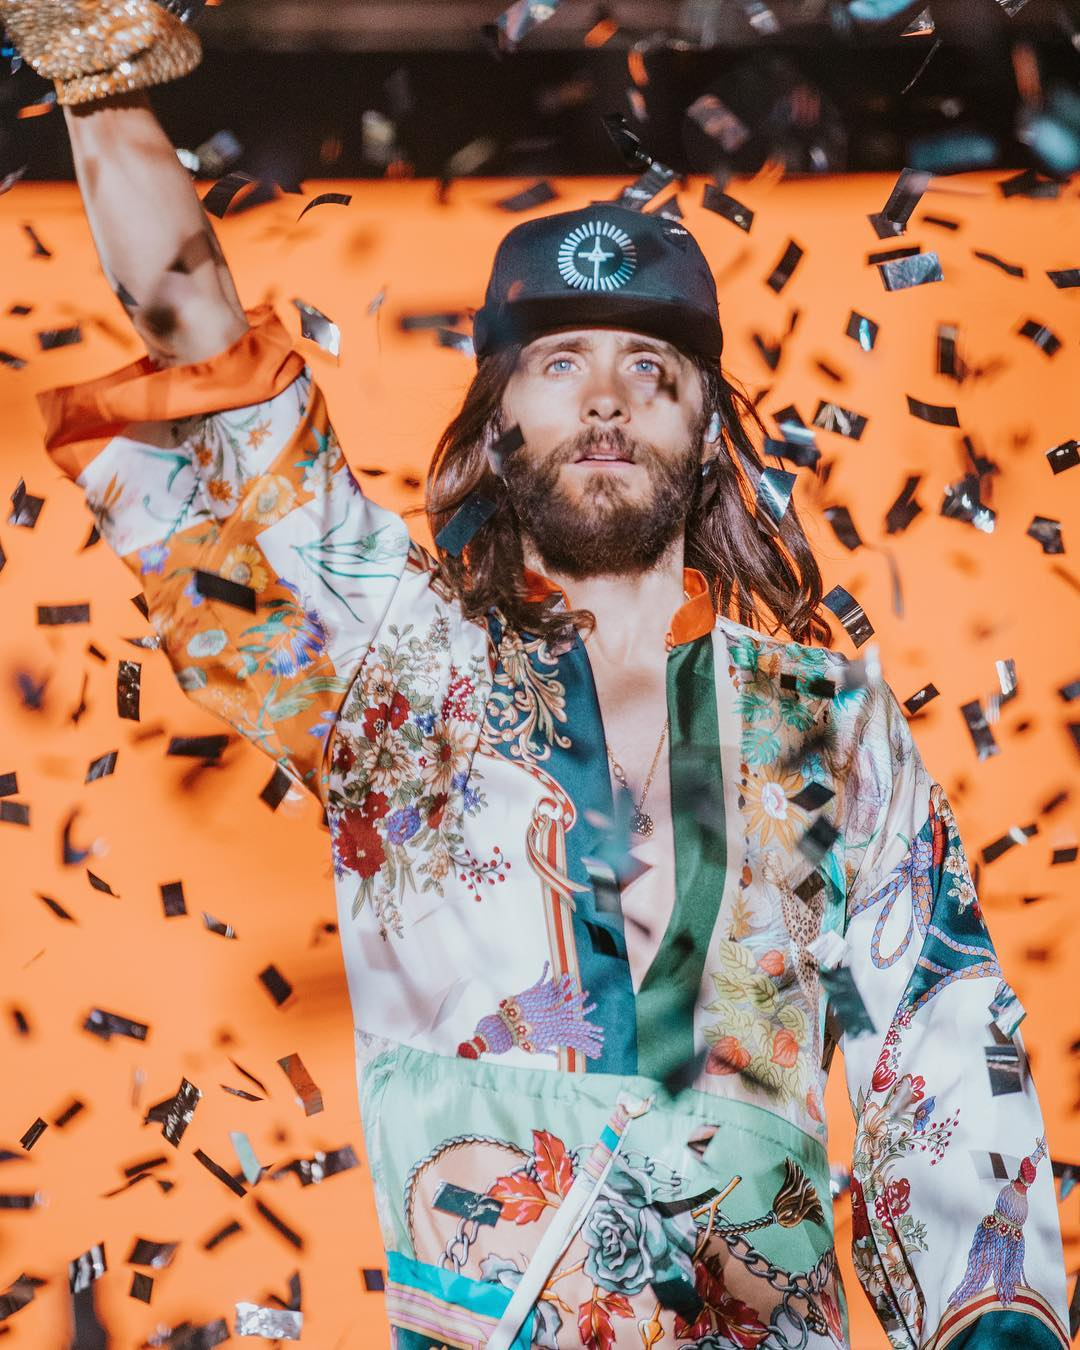 Raise your hands to the sky. #MonolithTour   https://t.co/dwPDbHDIwa https://t.co/MSUZKNwaxF